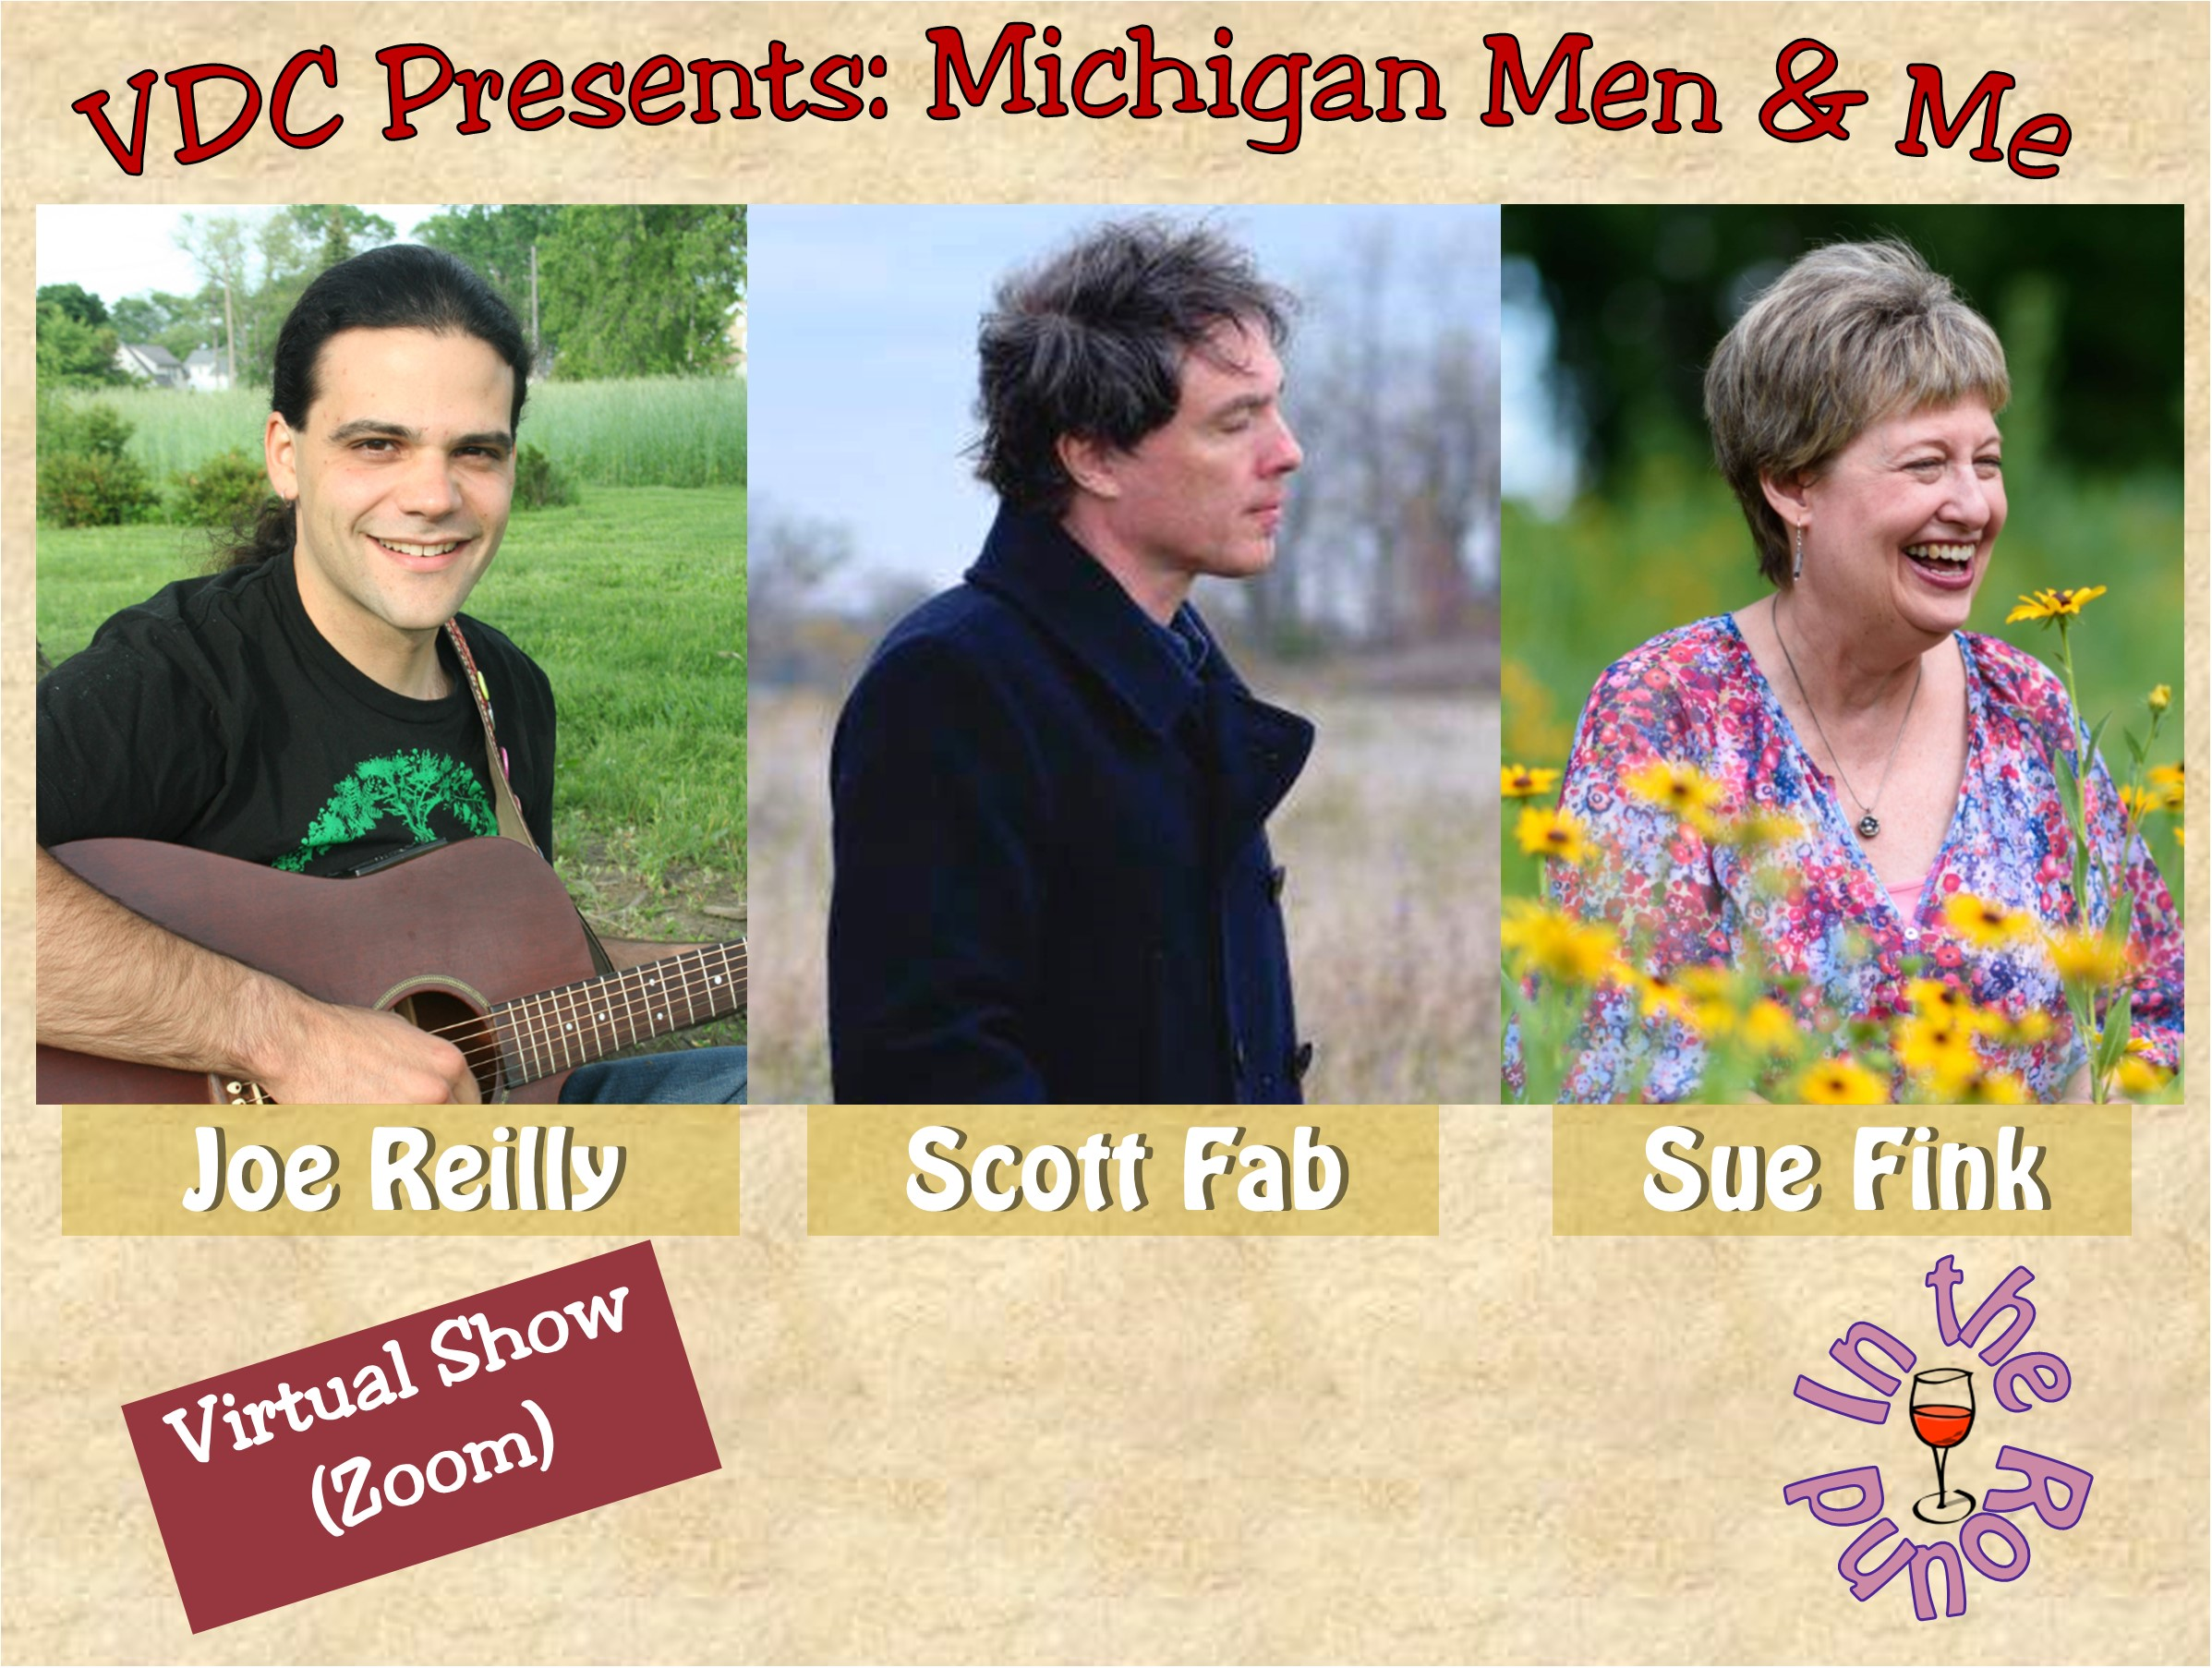 Virtual Dream Café Presents:  Michigan Men & Me:  Joe Reilly, Scott Fab, and Sue Fink In-the-Round